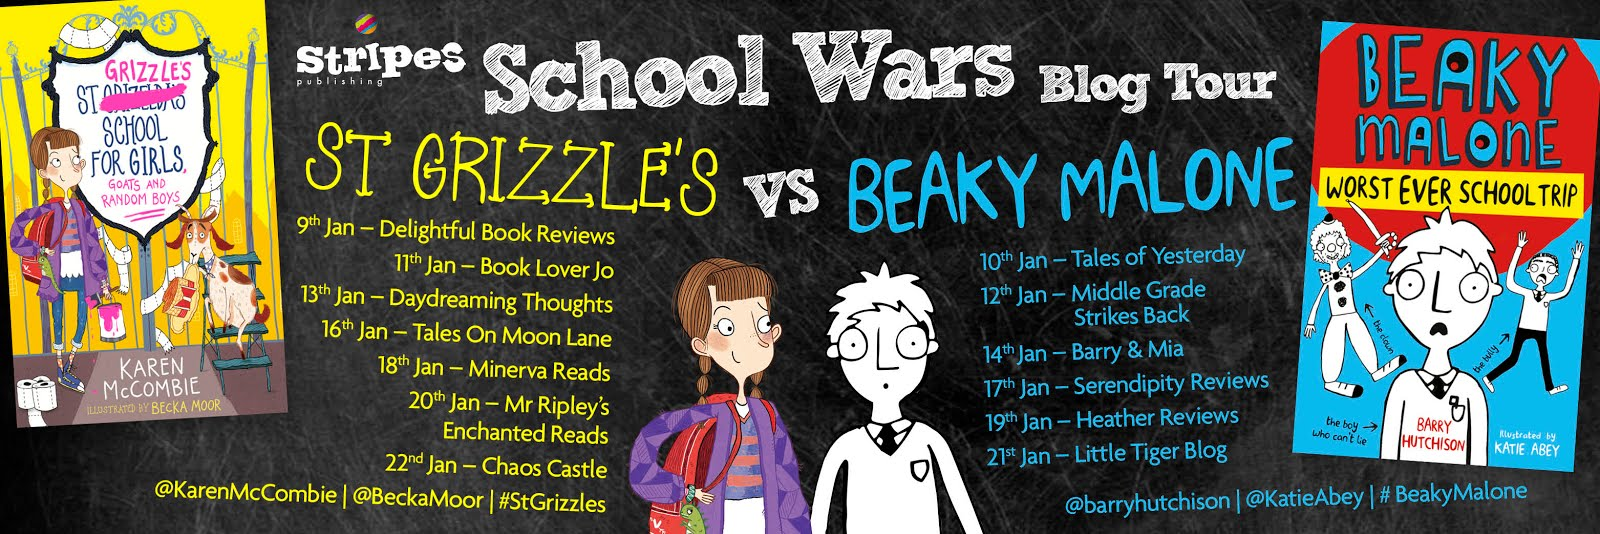 School Wars Blog Tour